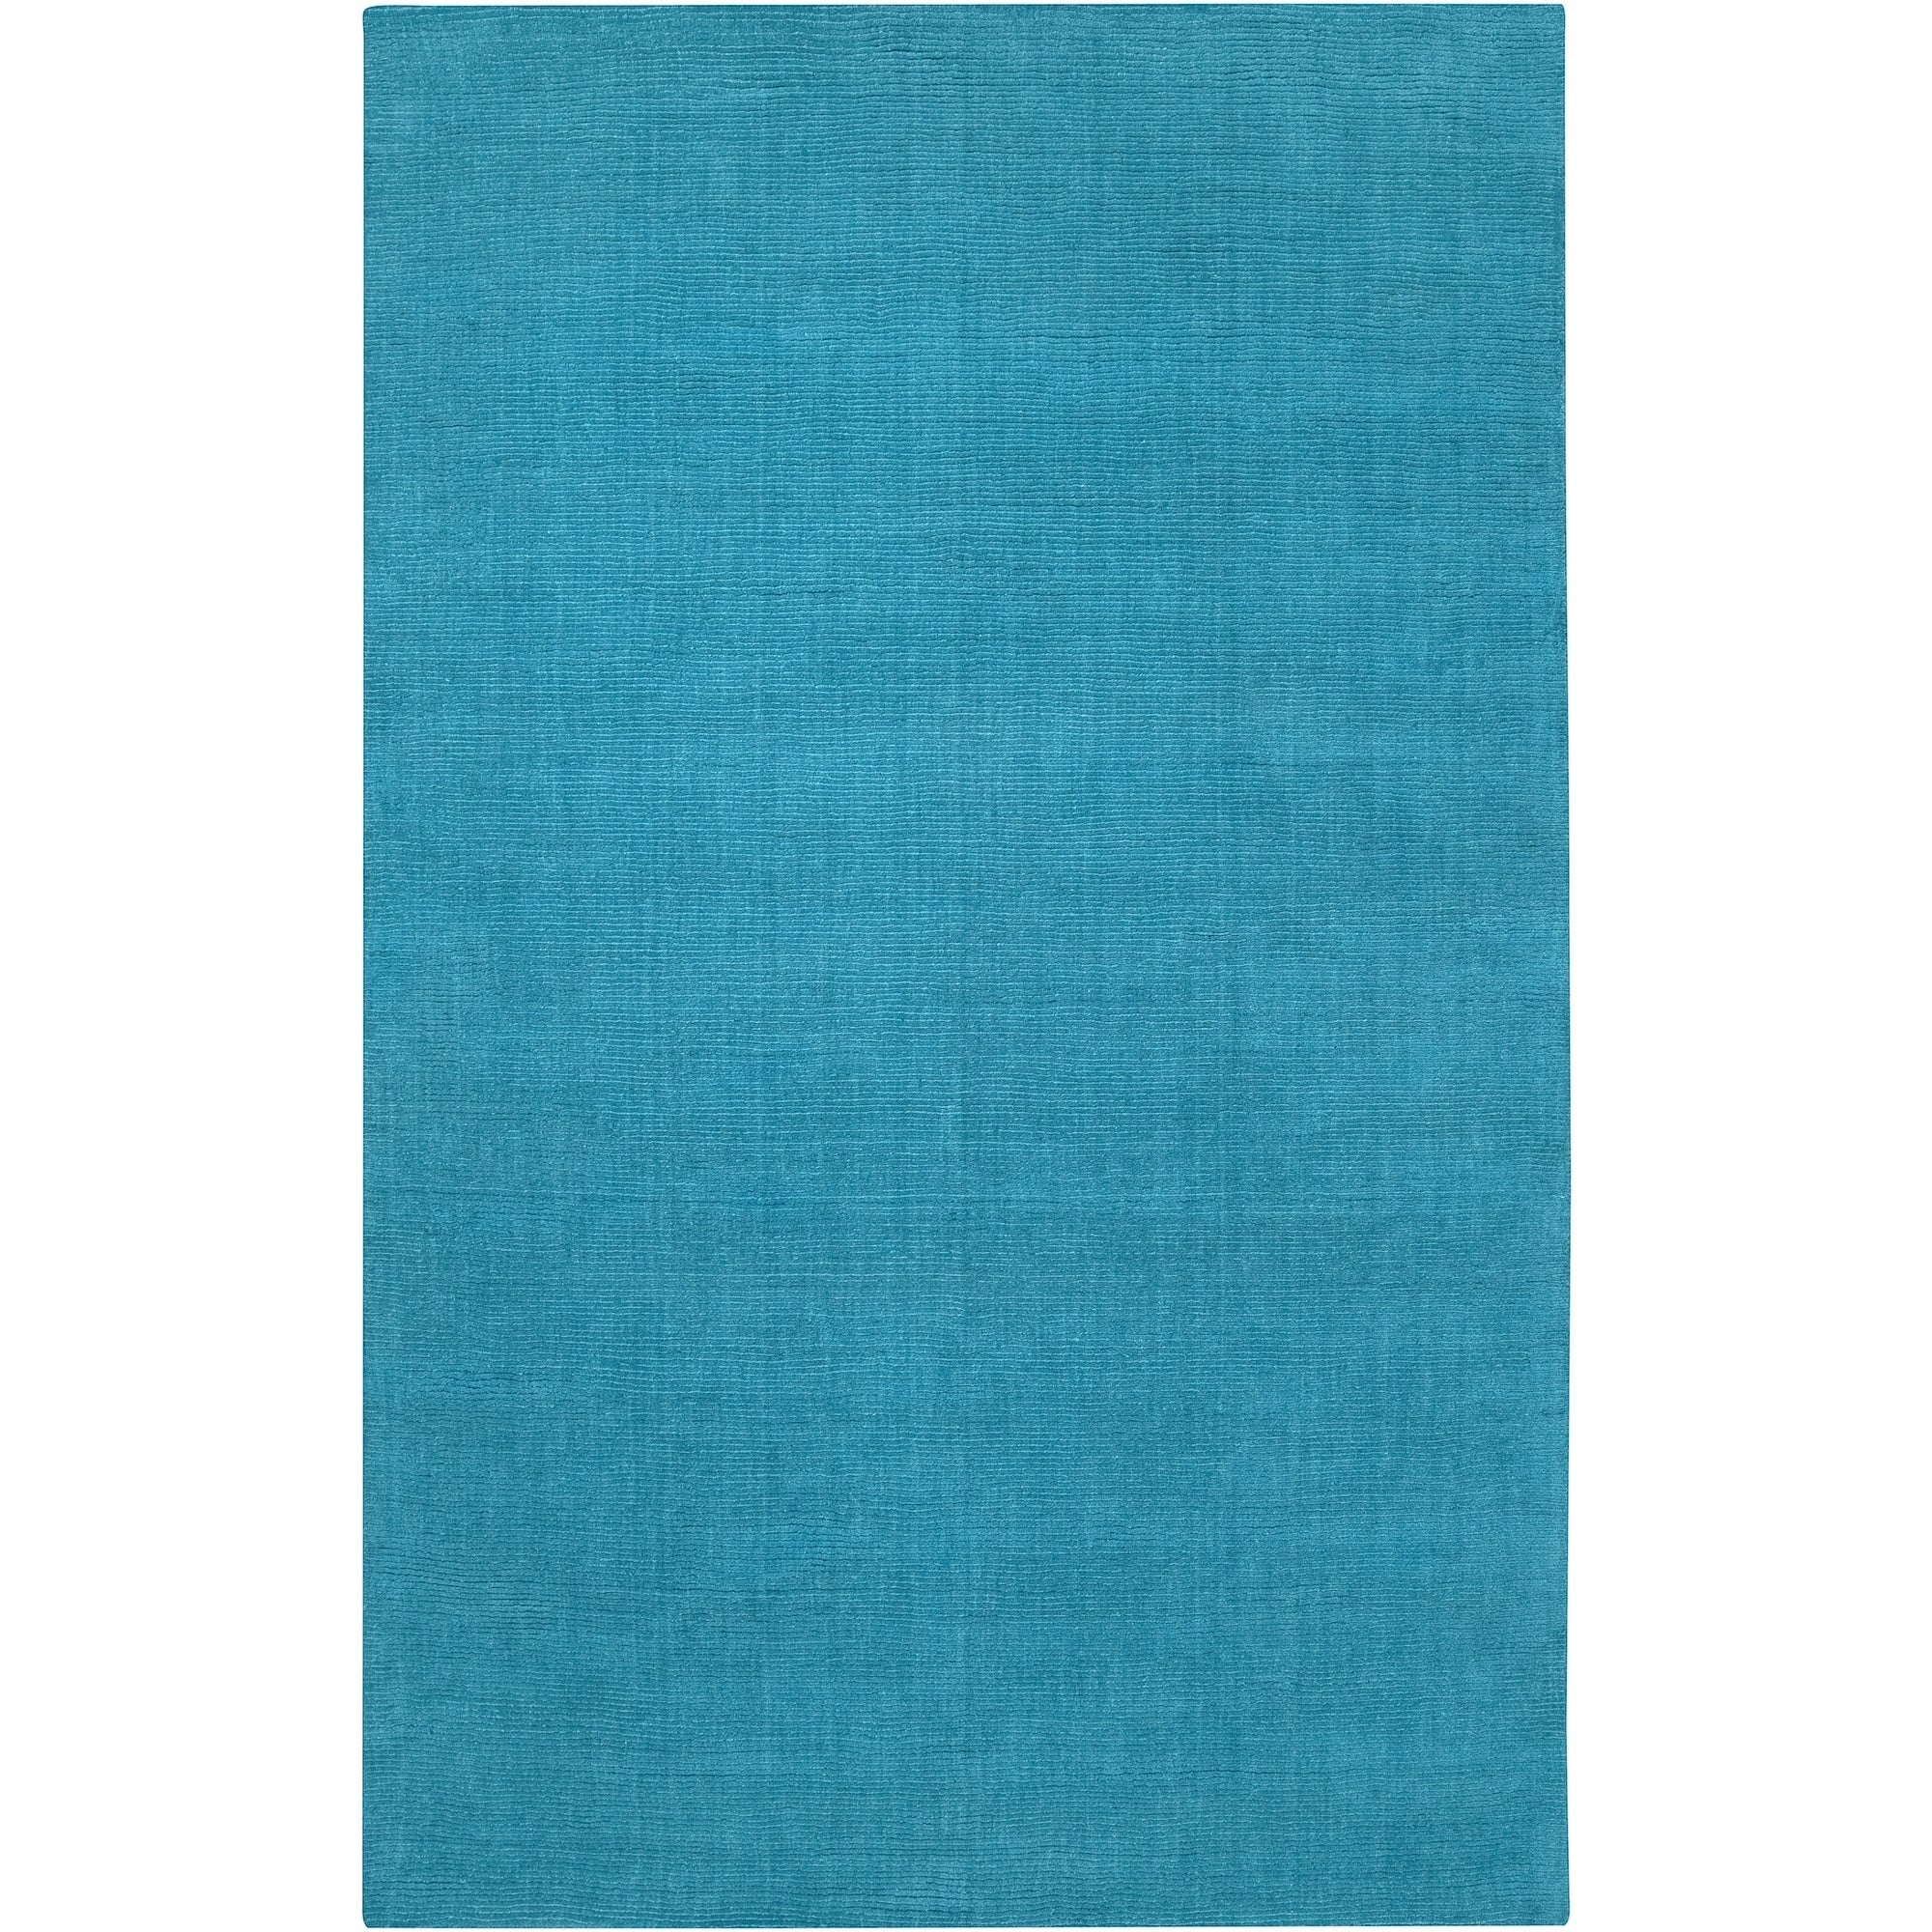 Shop Hand Crafted Teal Blue Solid Casual Ridges Wool Area Rug